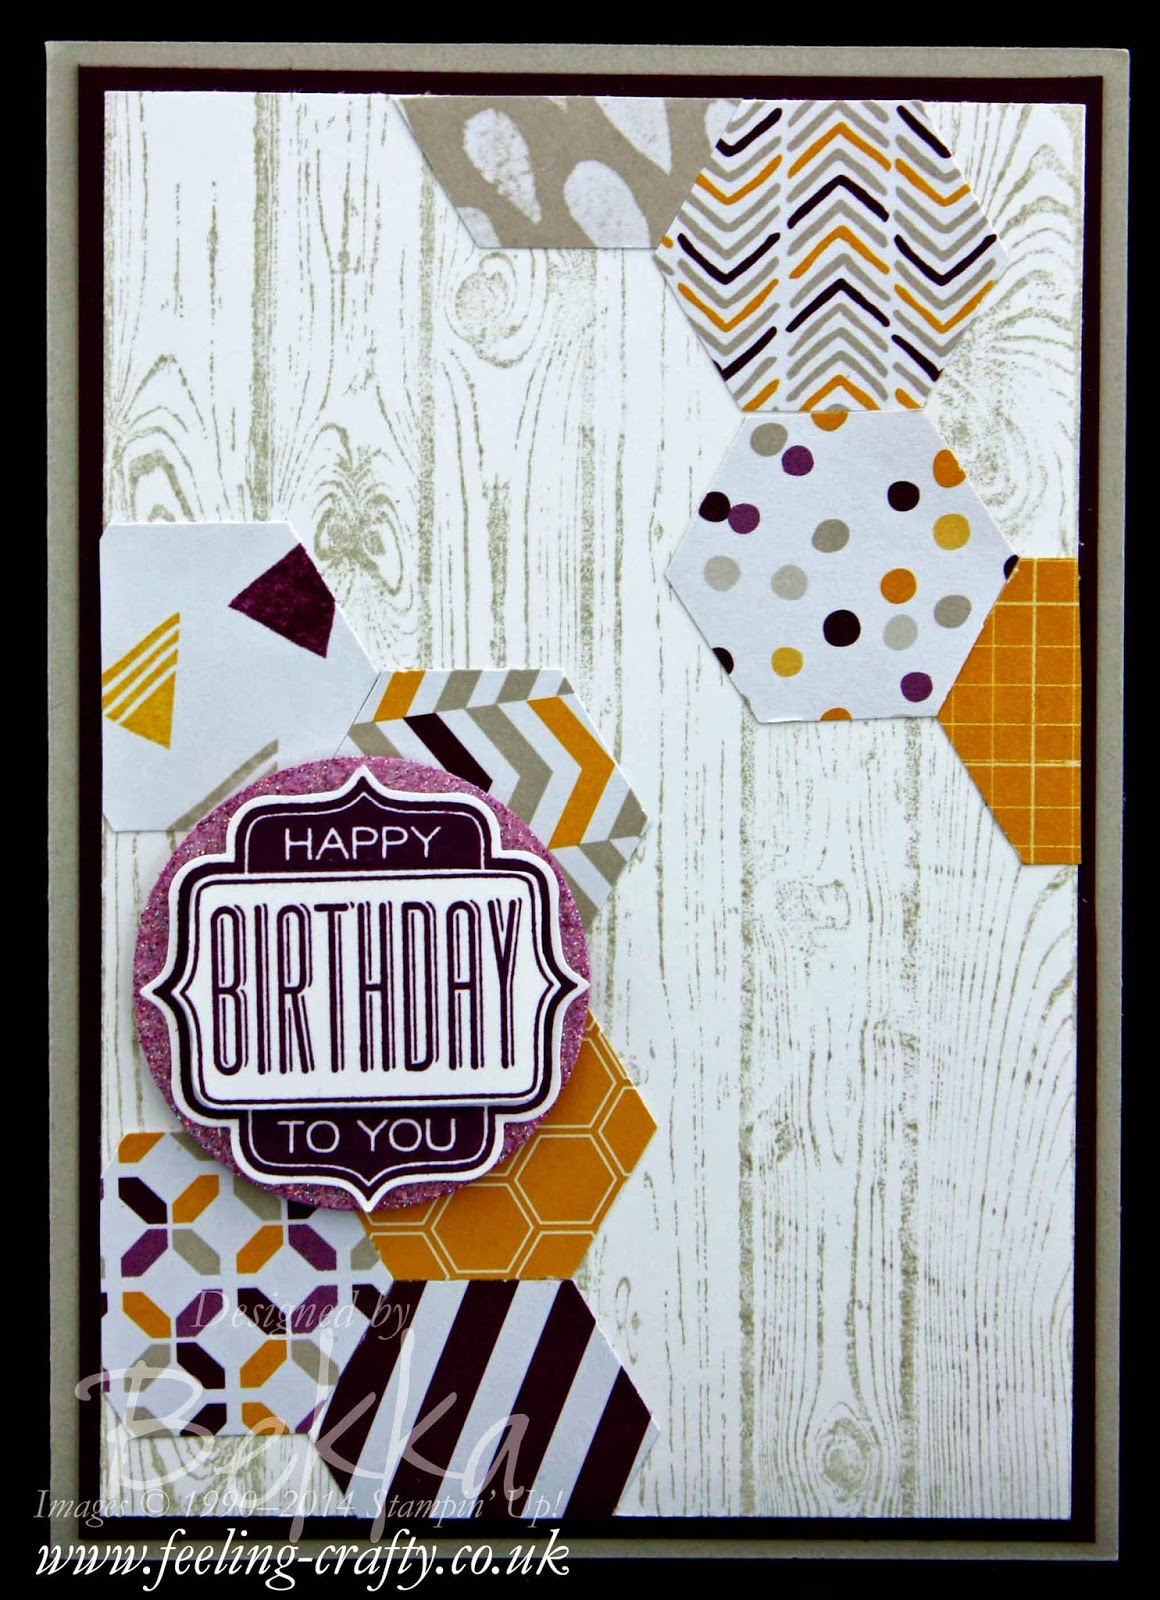 Moonlight Paper Stack Birthday Card with Hexagons - check out this blog for lots of great ideas